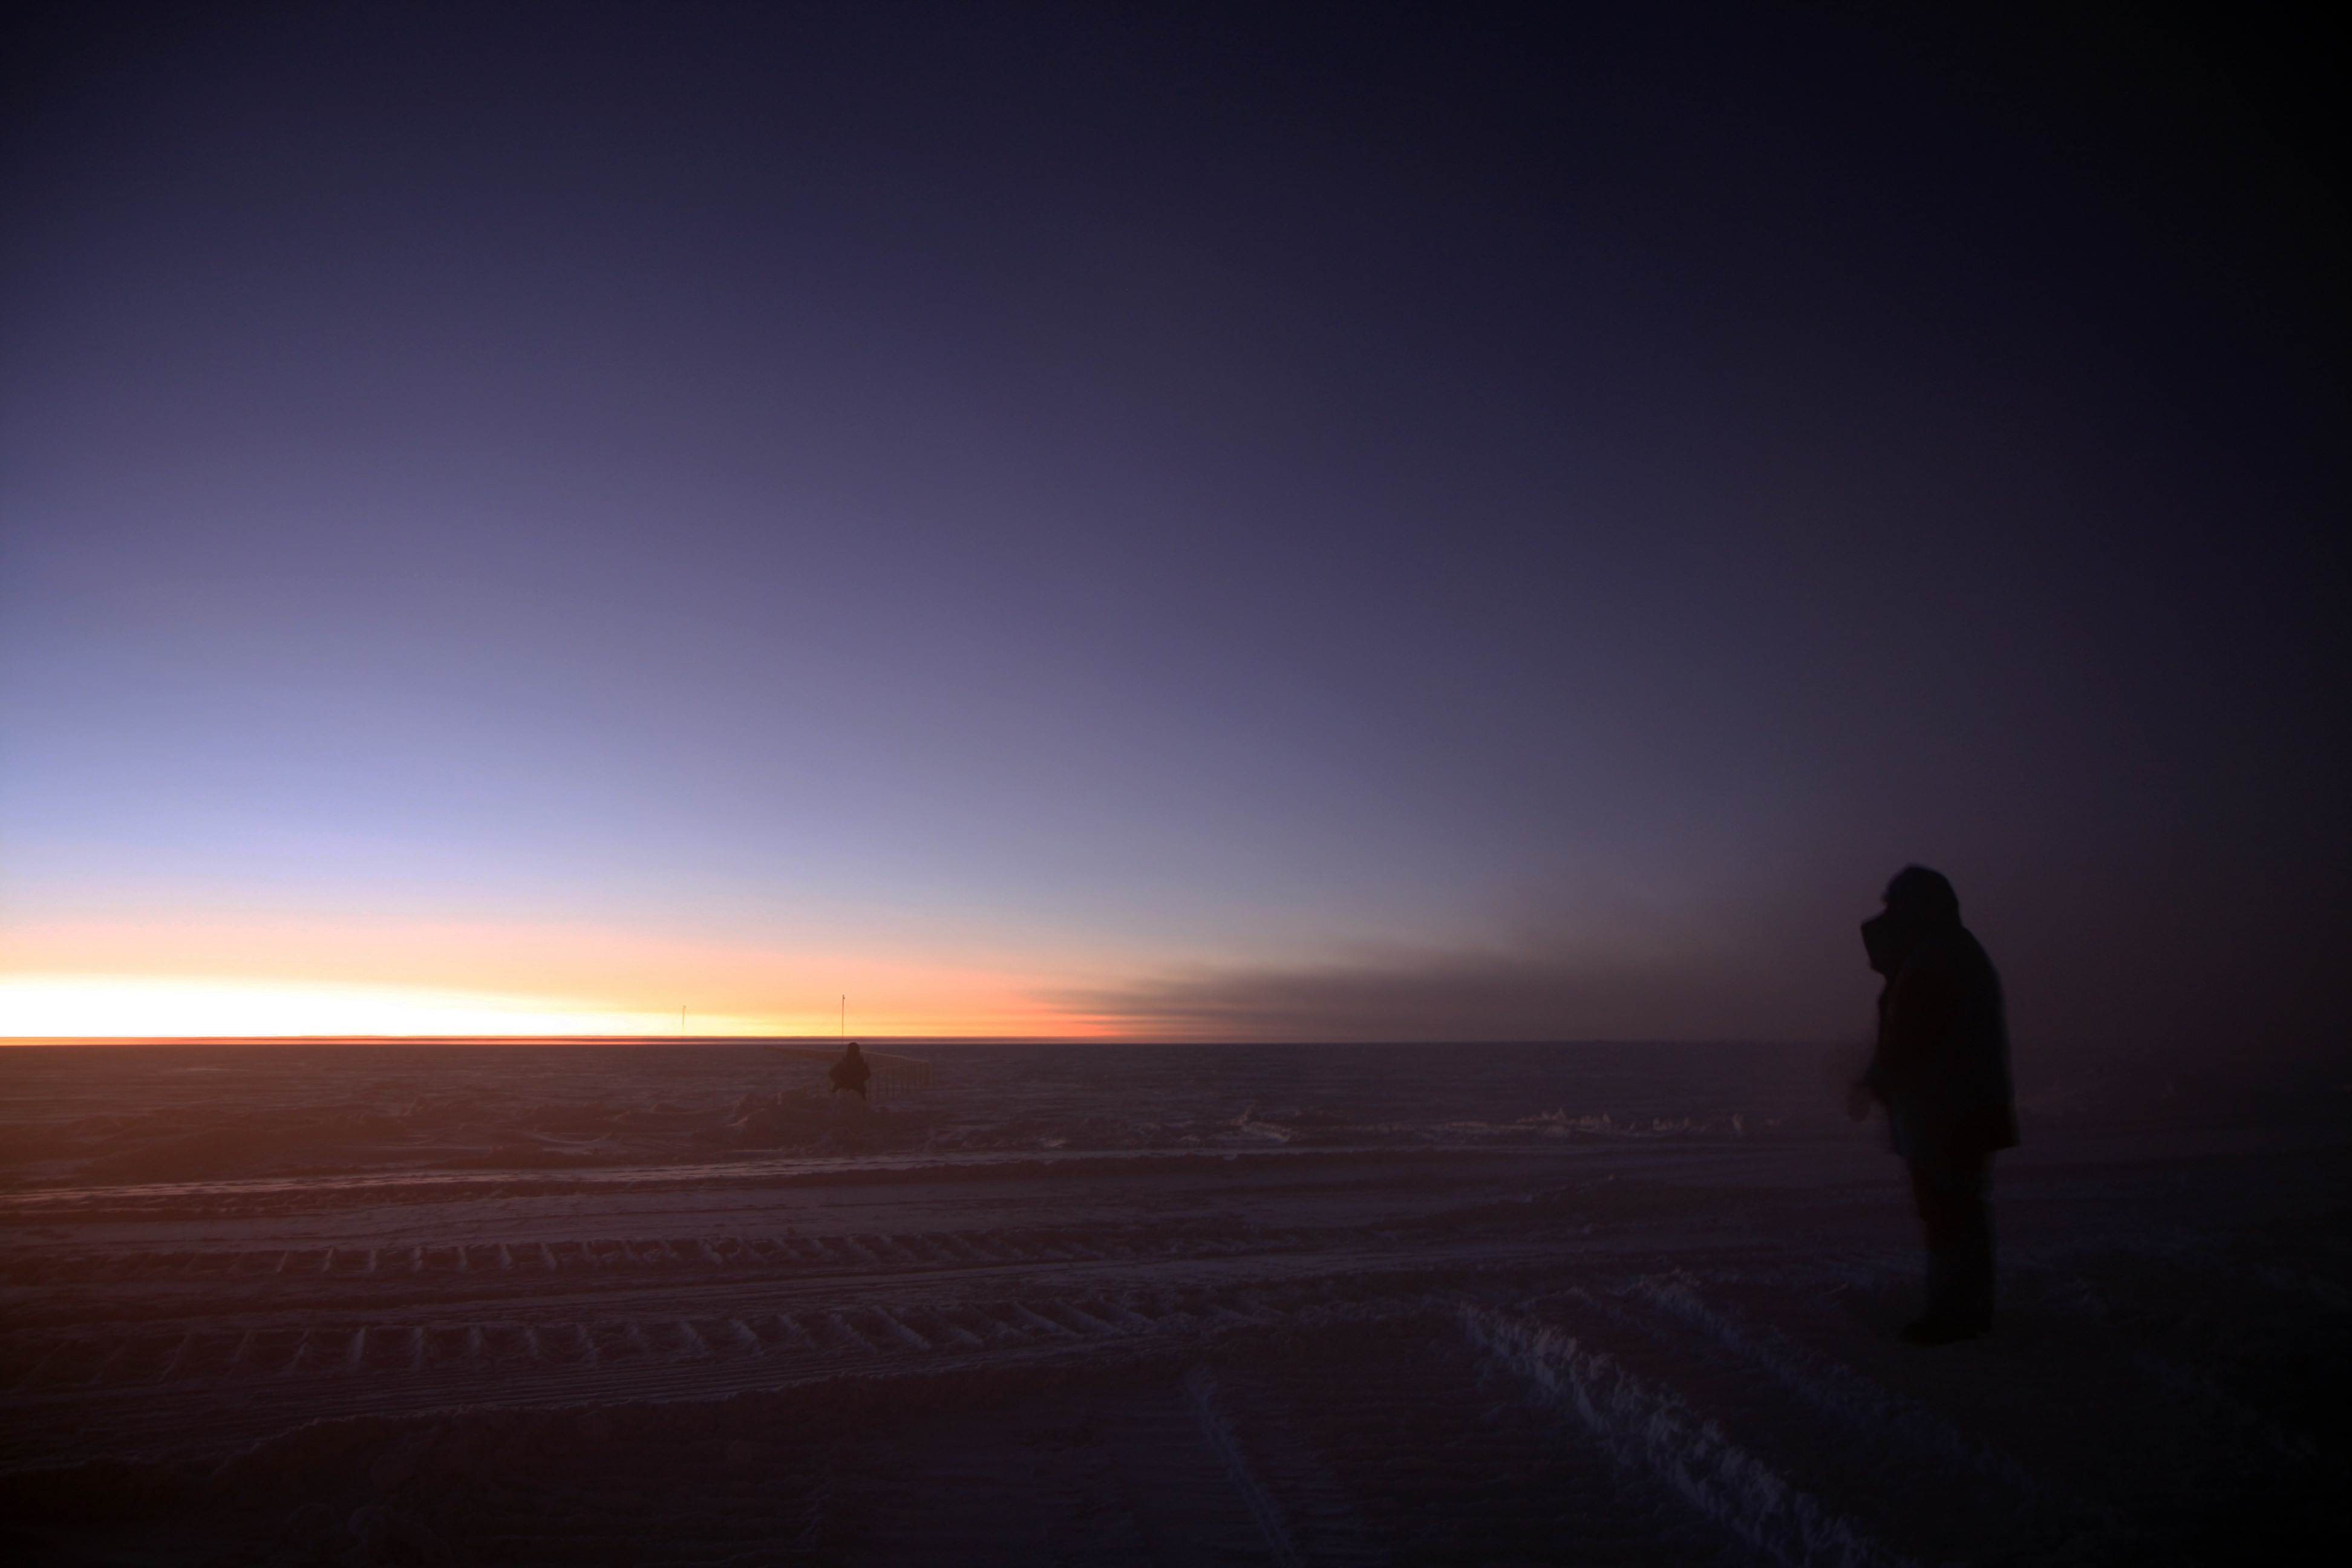 Space in Images - 2013 - 03 - Alone in Concordia